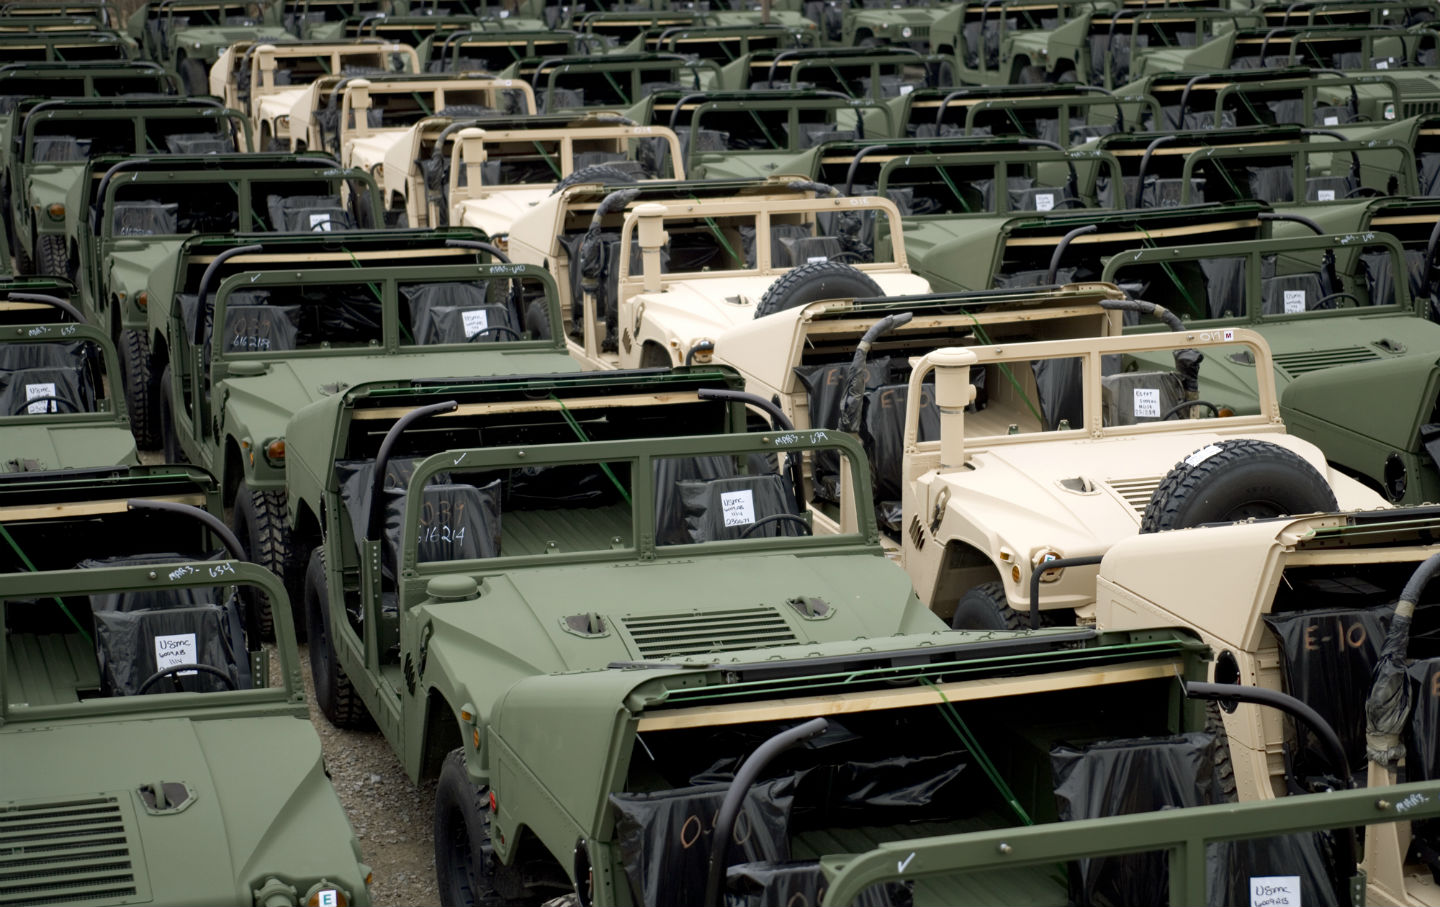 Army Humvees